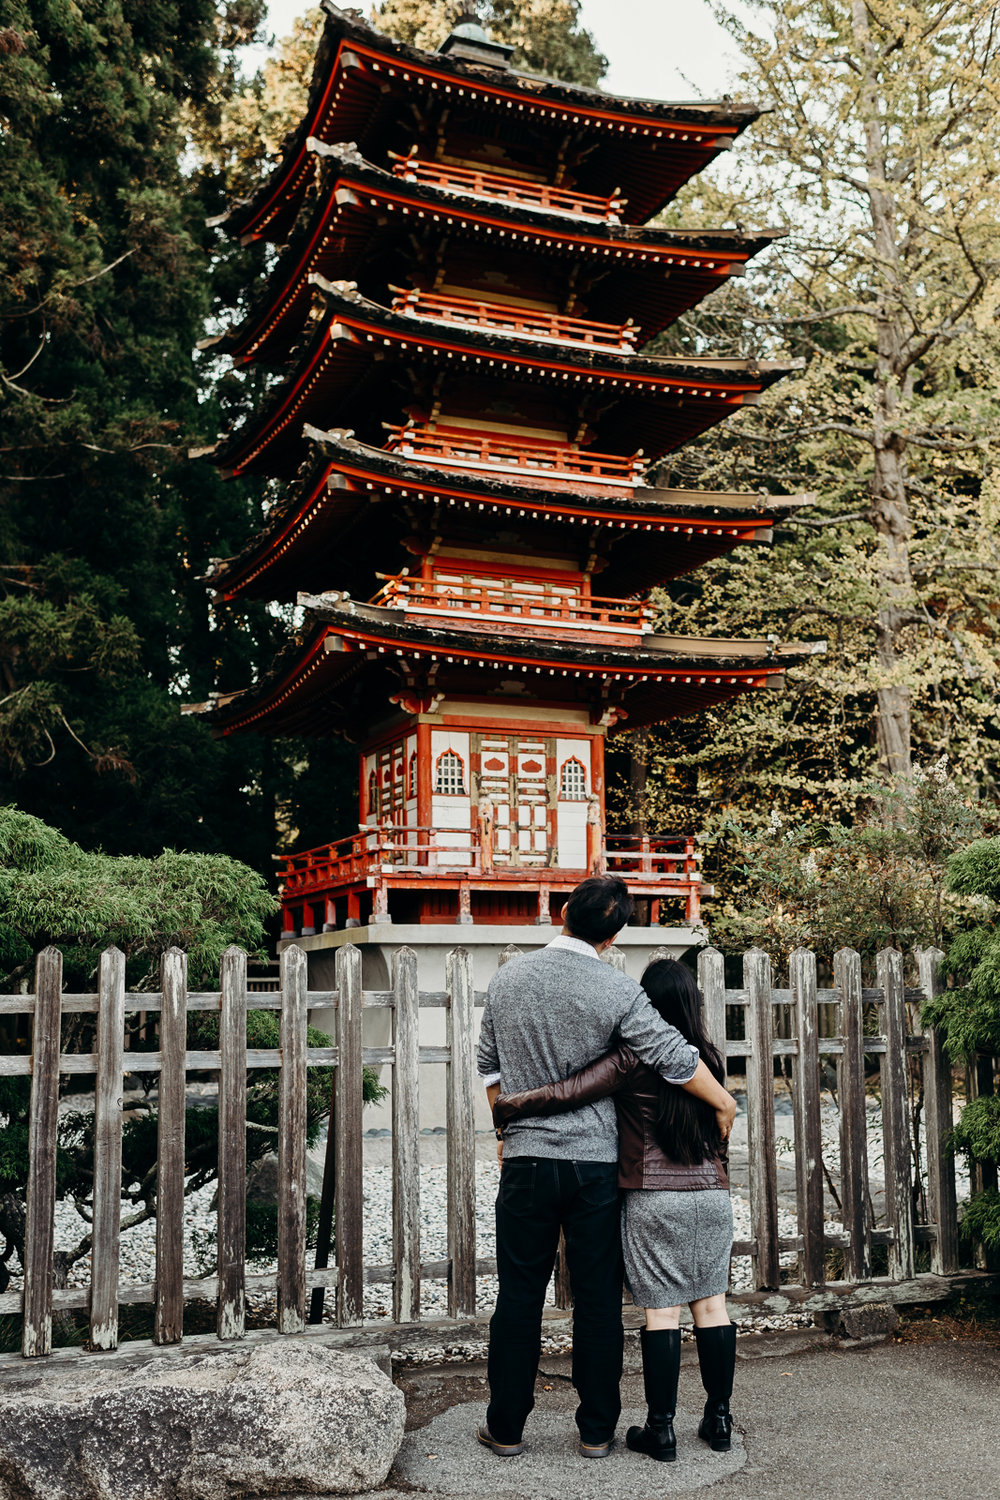 Engaged couple wraps their arms around each other's waists while looking at a red Thai pavilion.